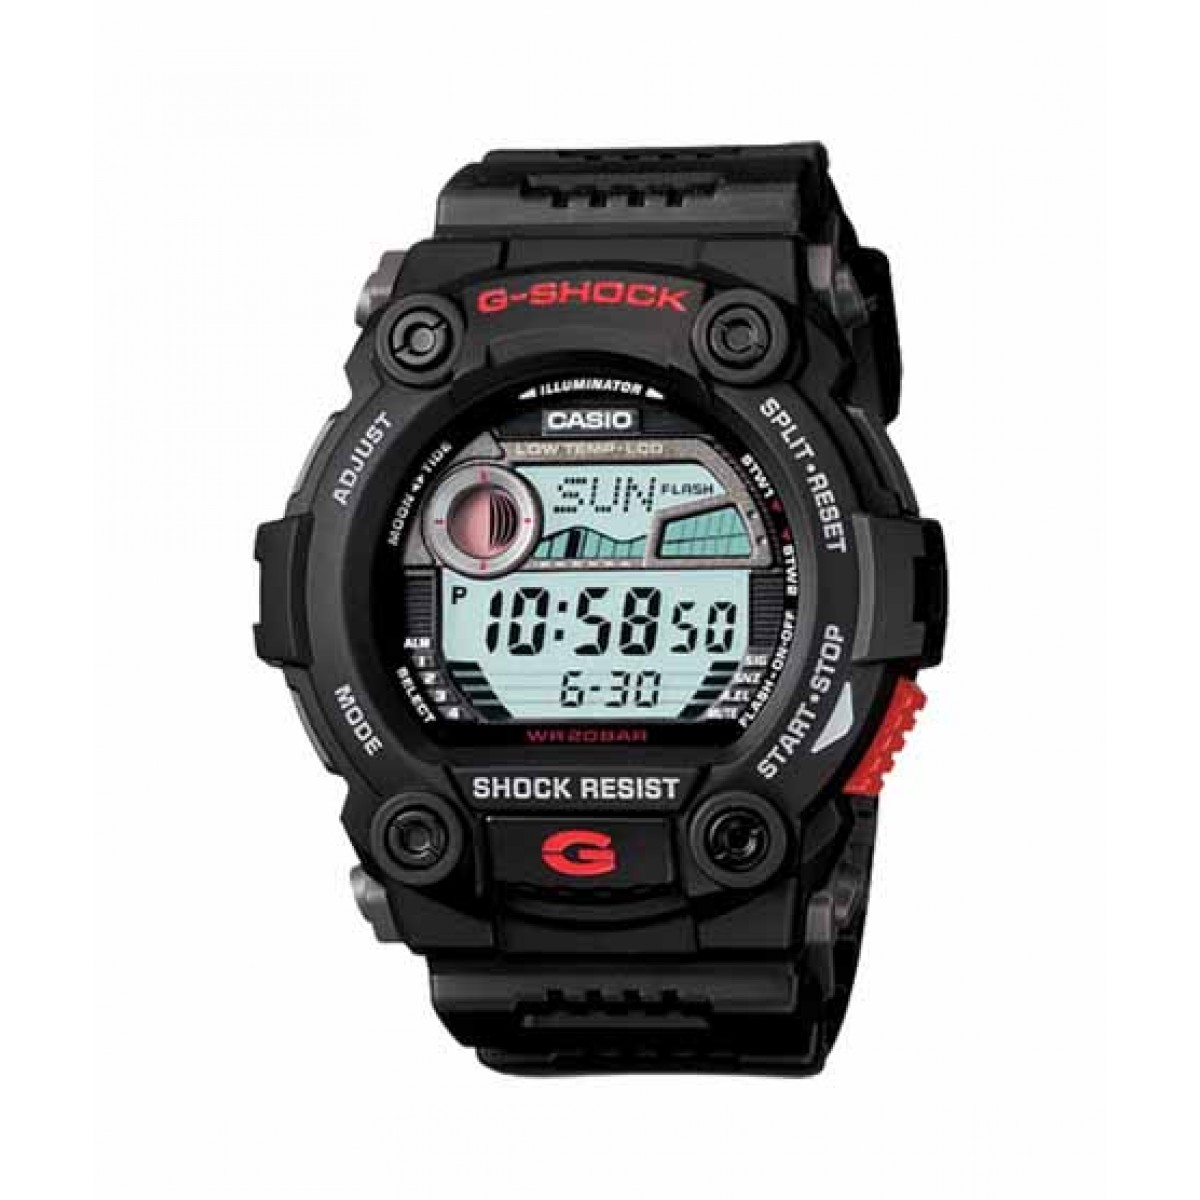 341ade27ce2e2 Casio G-Shock Men s Watch (G7900-1) Price in Pakistan